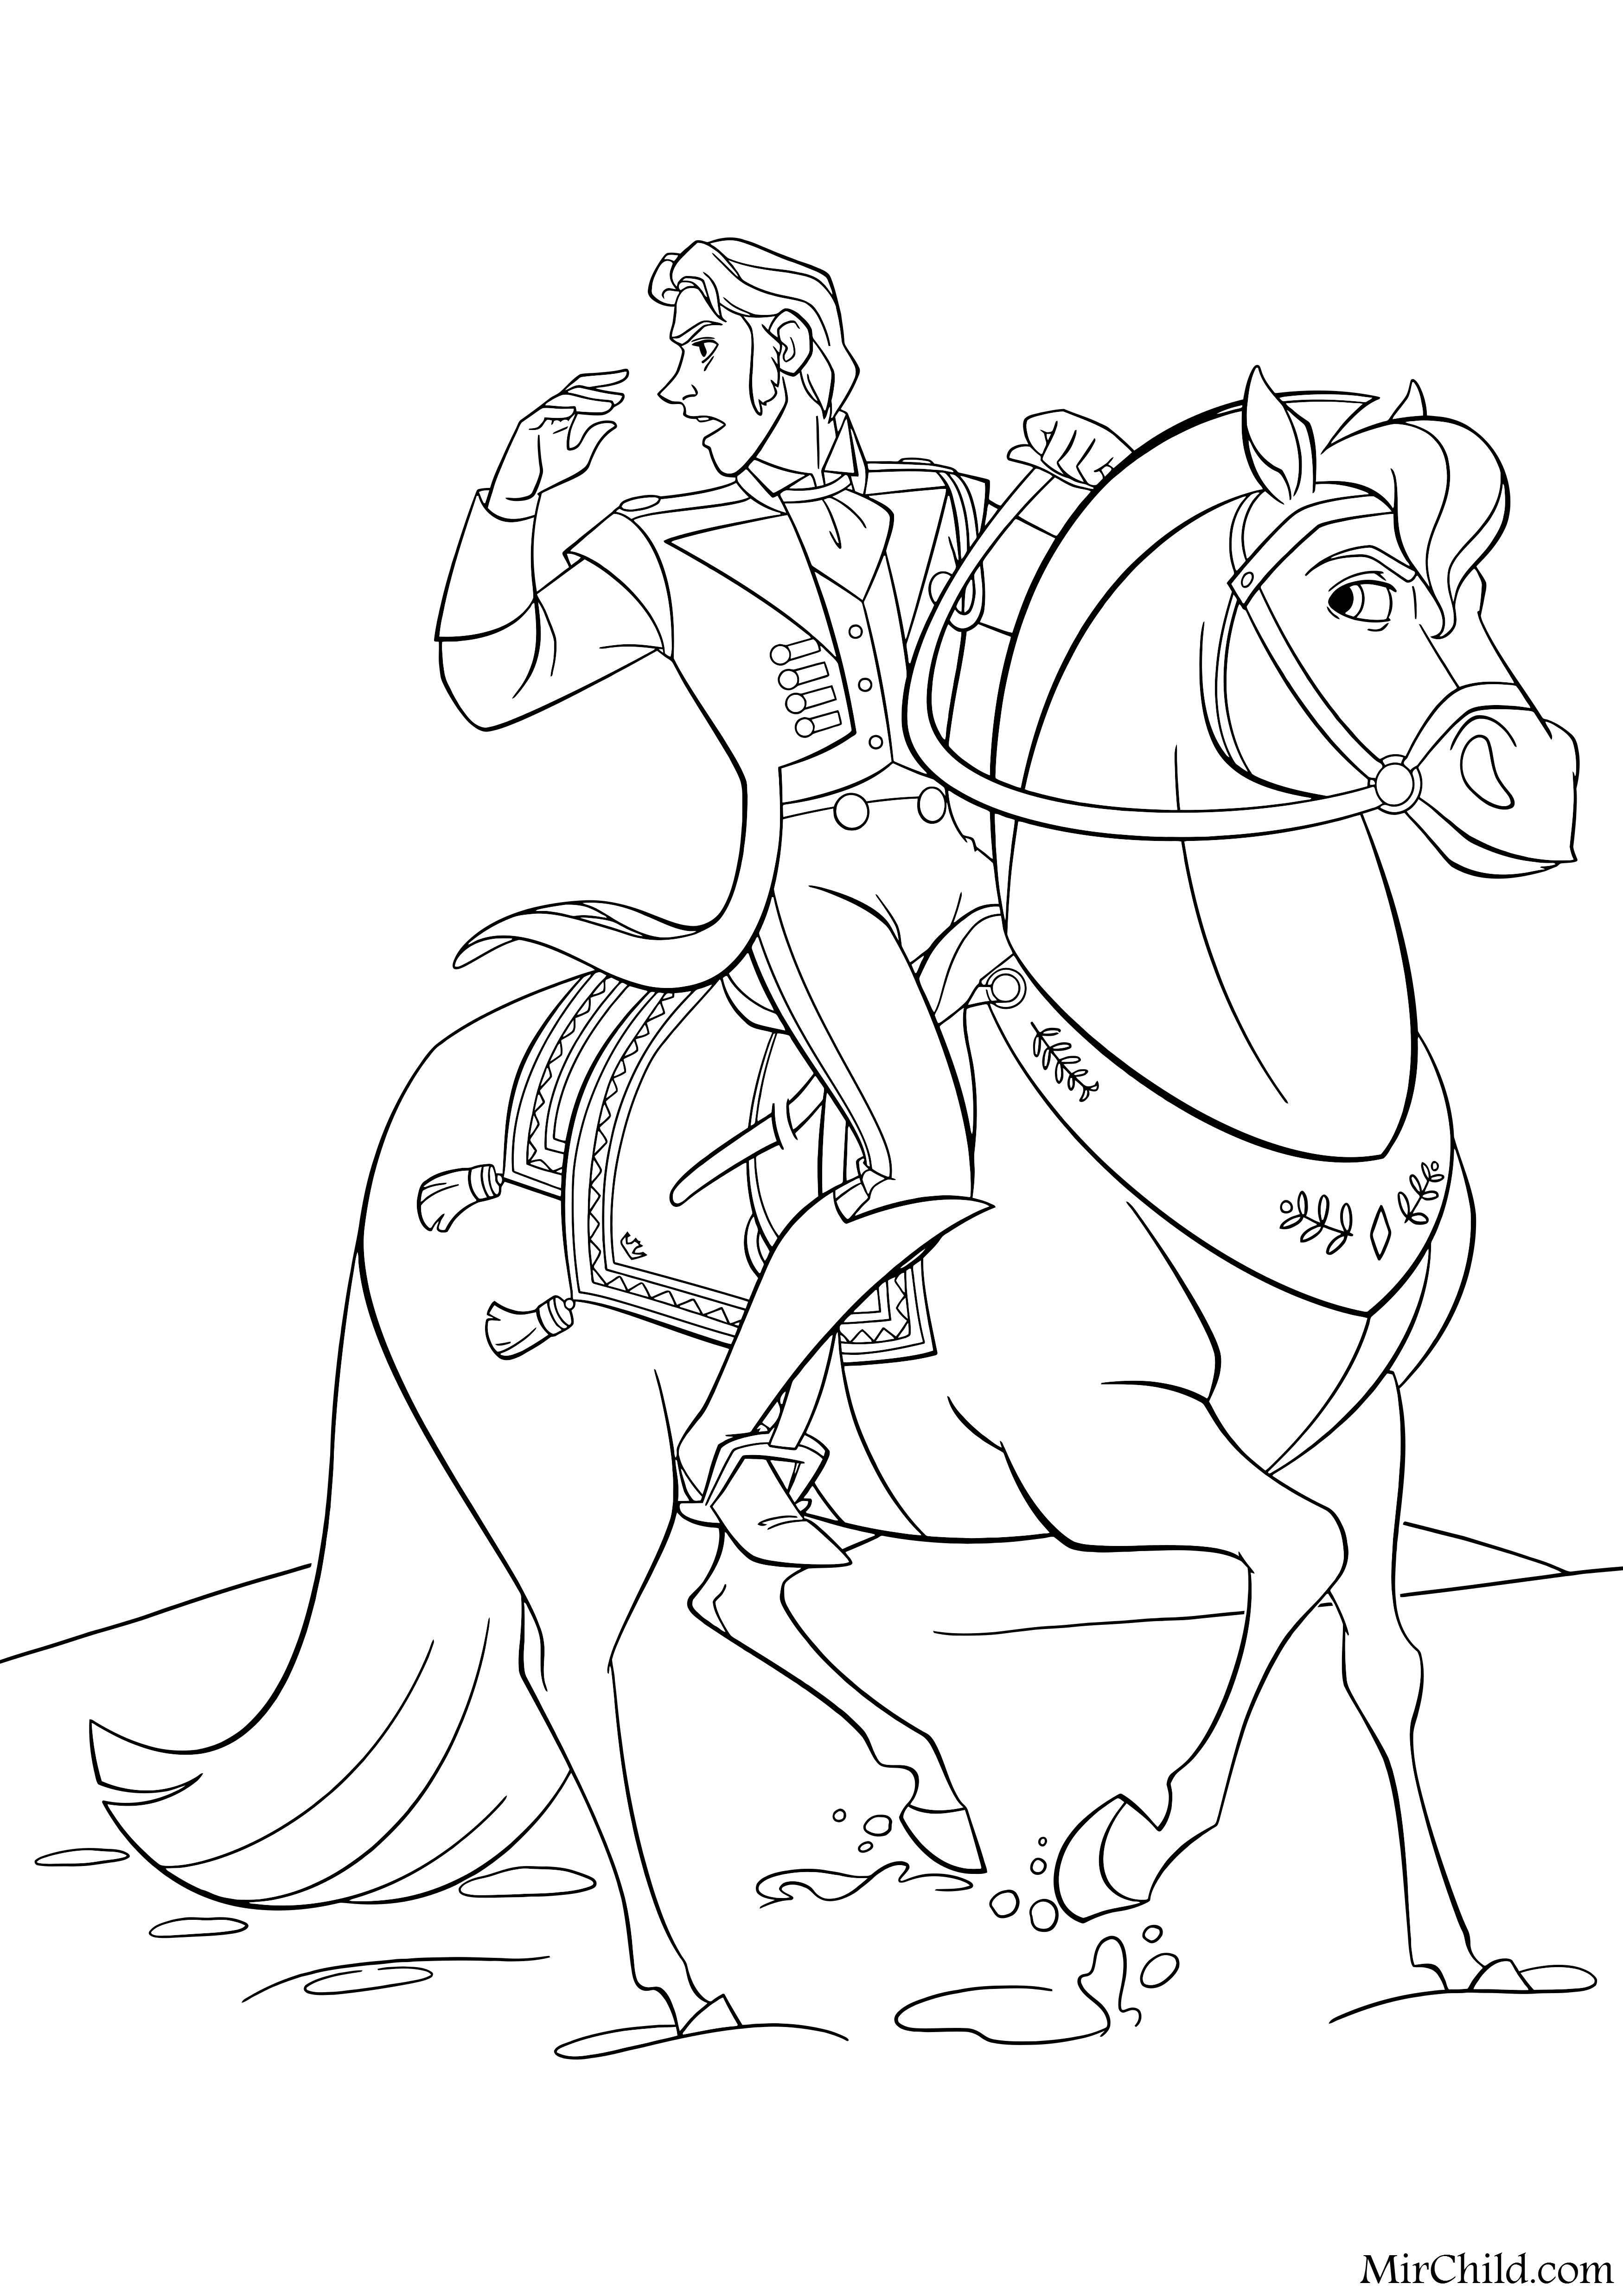 Disney frozen coloring pages hans - Frozen Coloring Pages Disney Printables Free And Hansgallery Disney Wiki Fandom Powered By Wikia